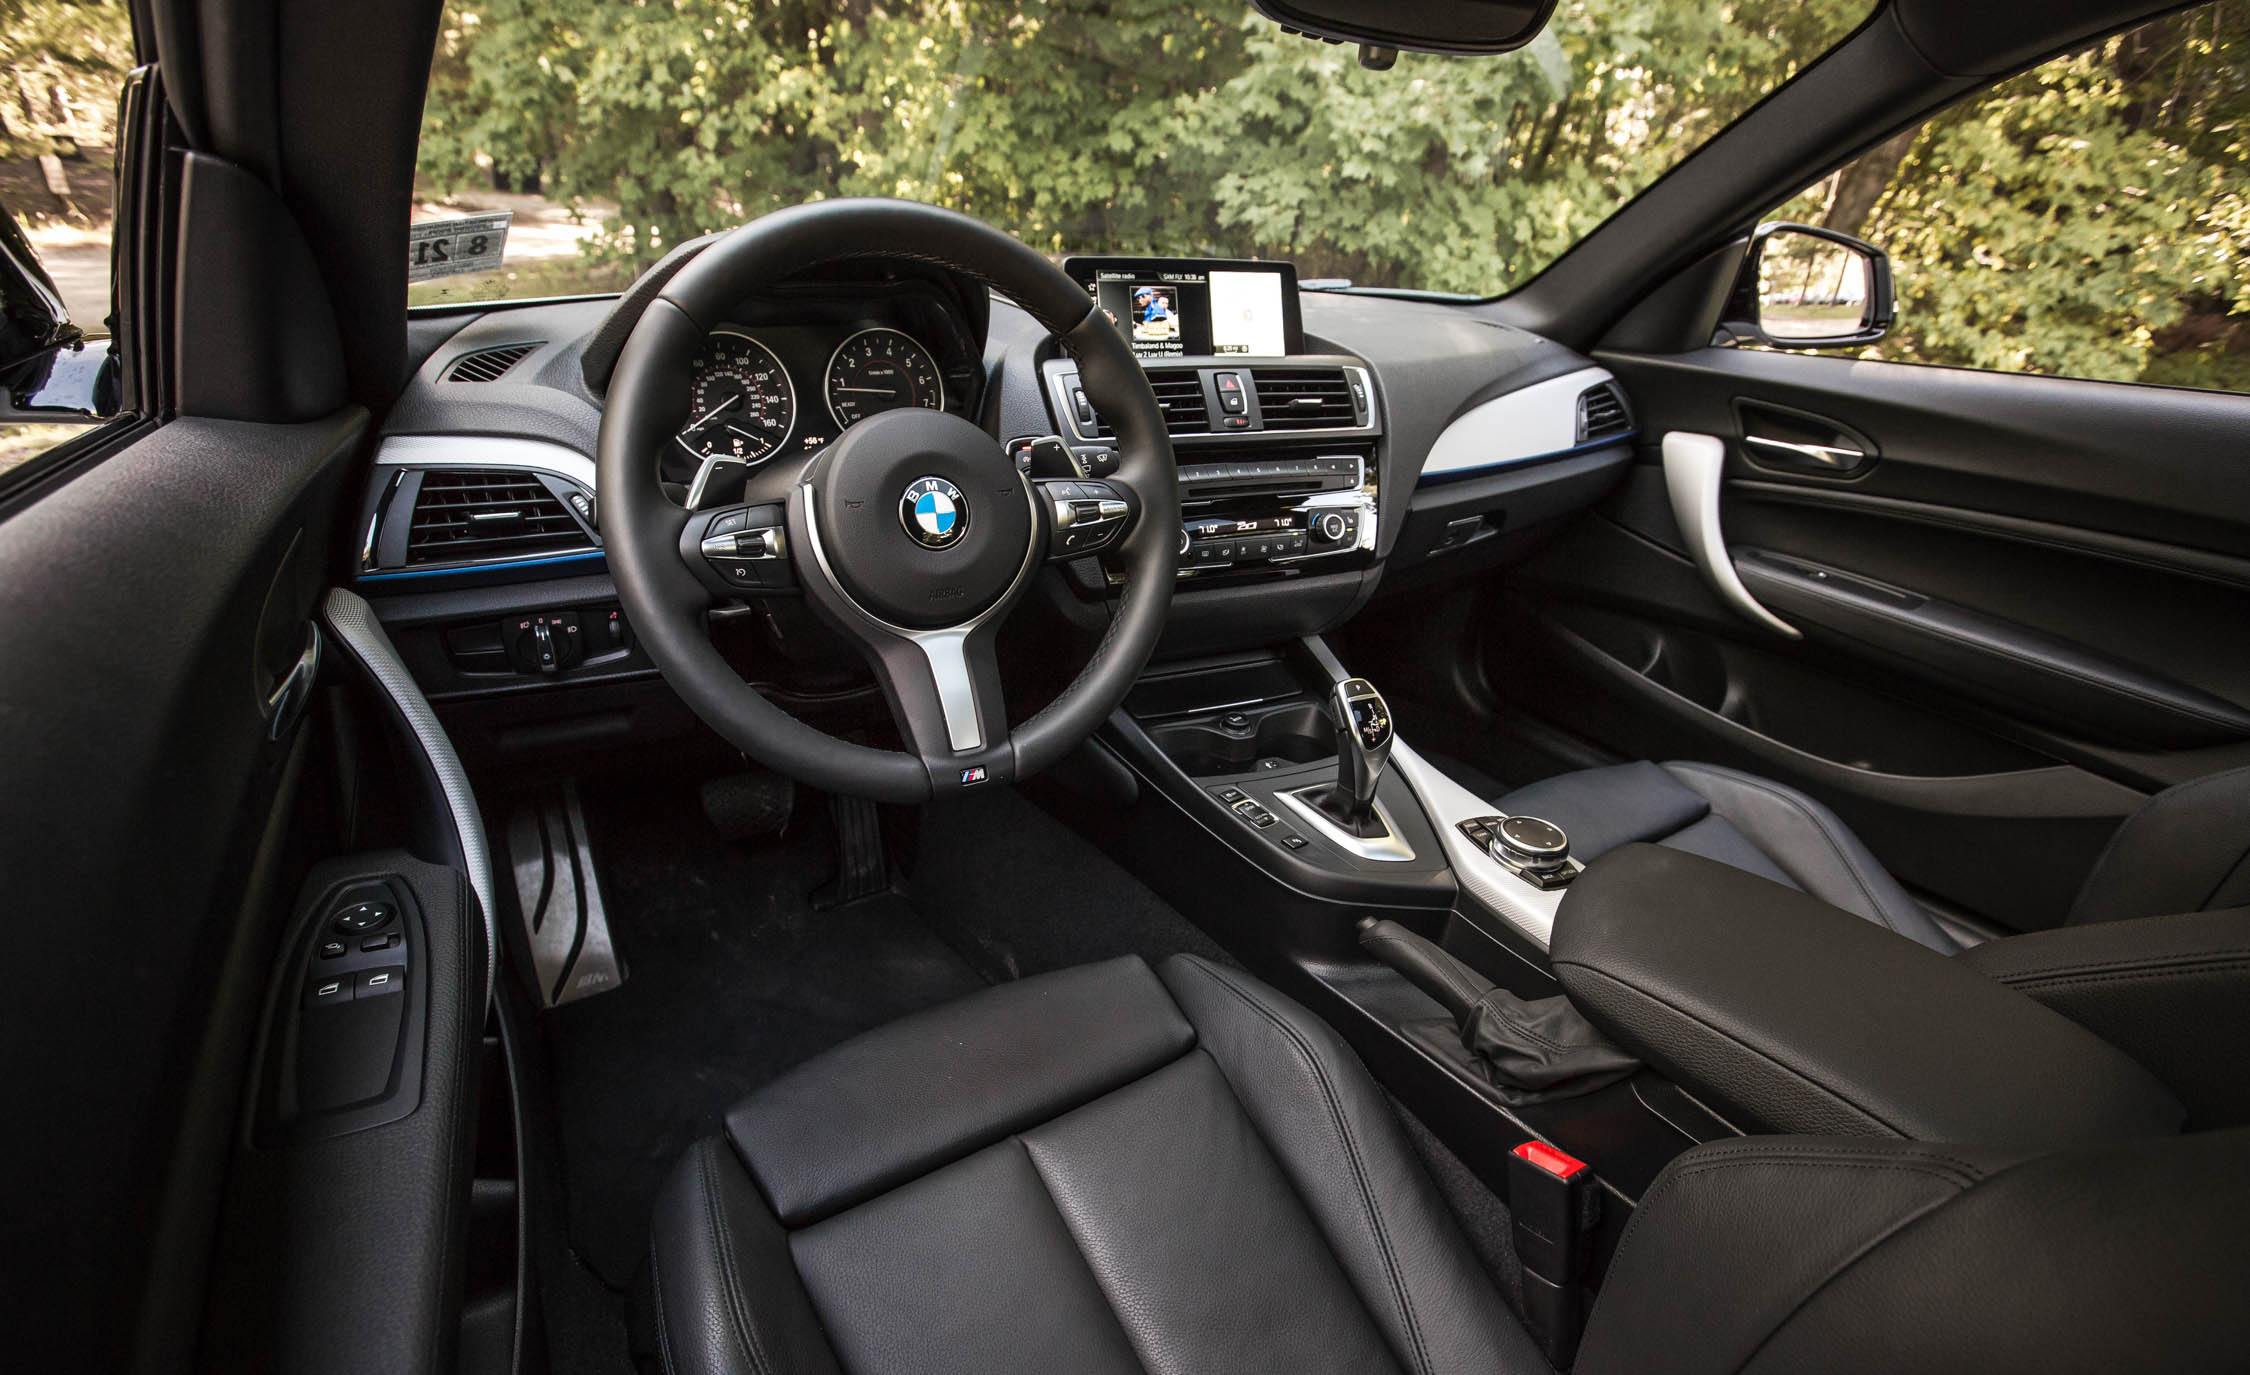 2017 BMW M240i Coupe Automatic Interior Driver Cockpit And Dash (Photo 23 of 36)